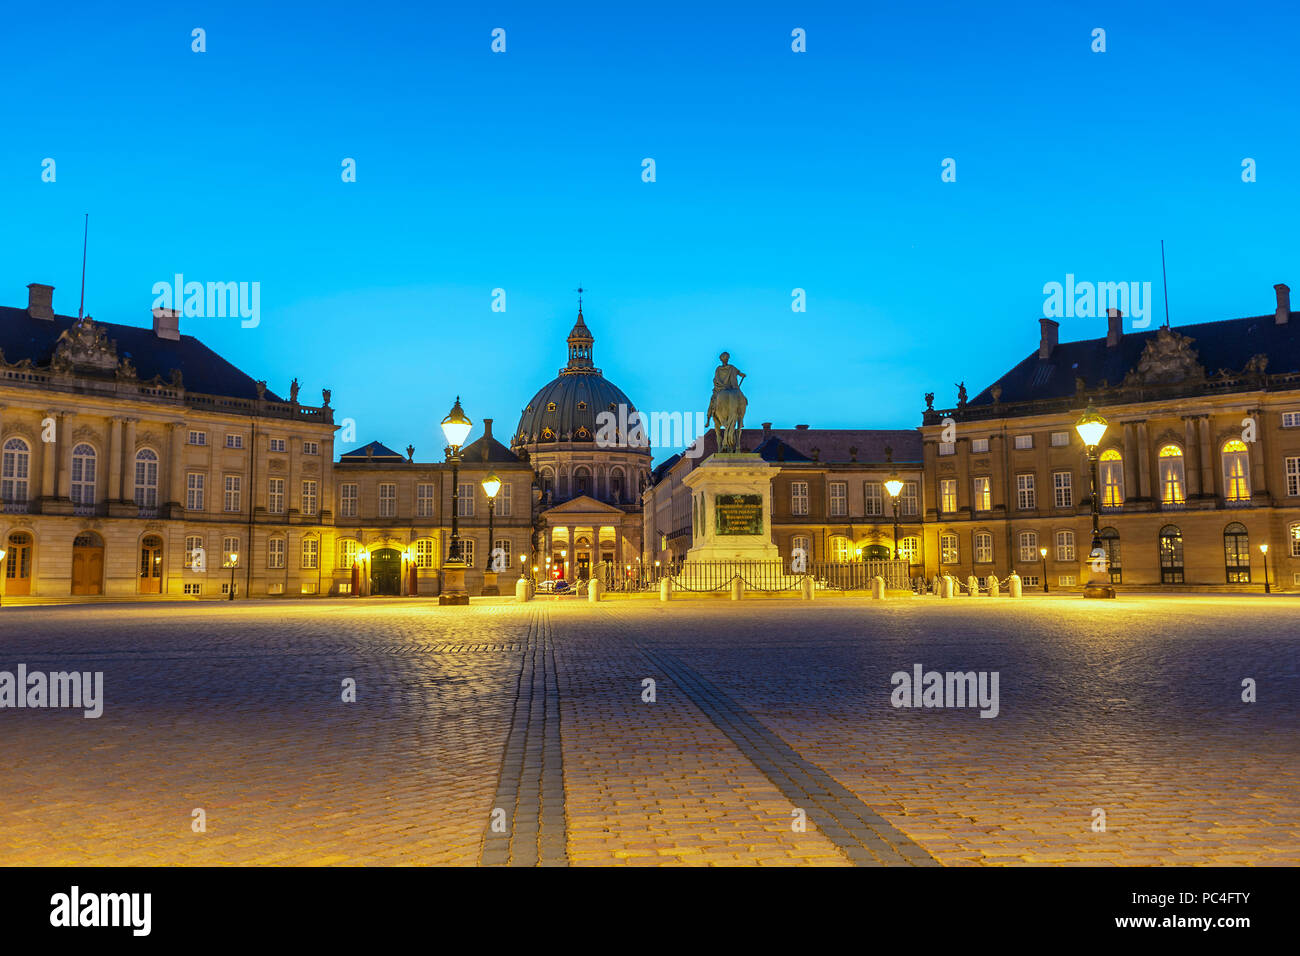 Copenhagen night city skyline at Amalienborg Palace, Copenhagen Denmark - Stock Image